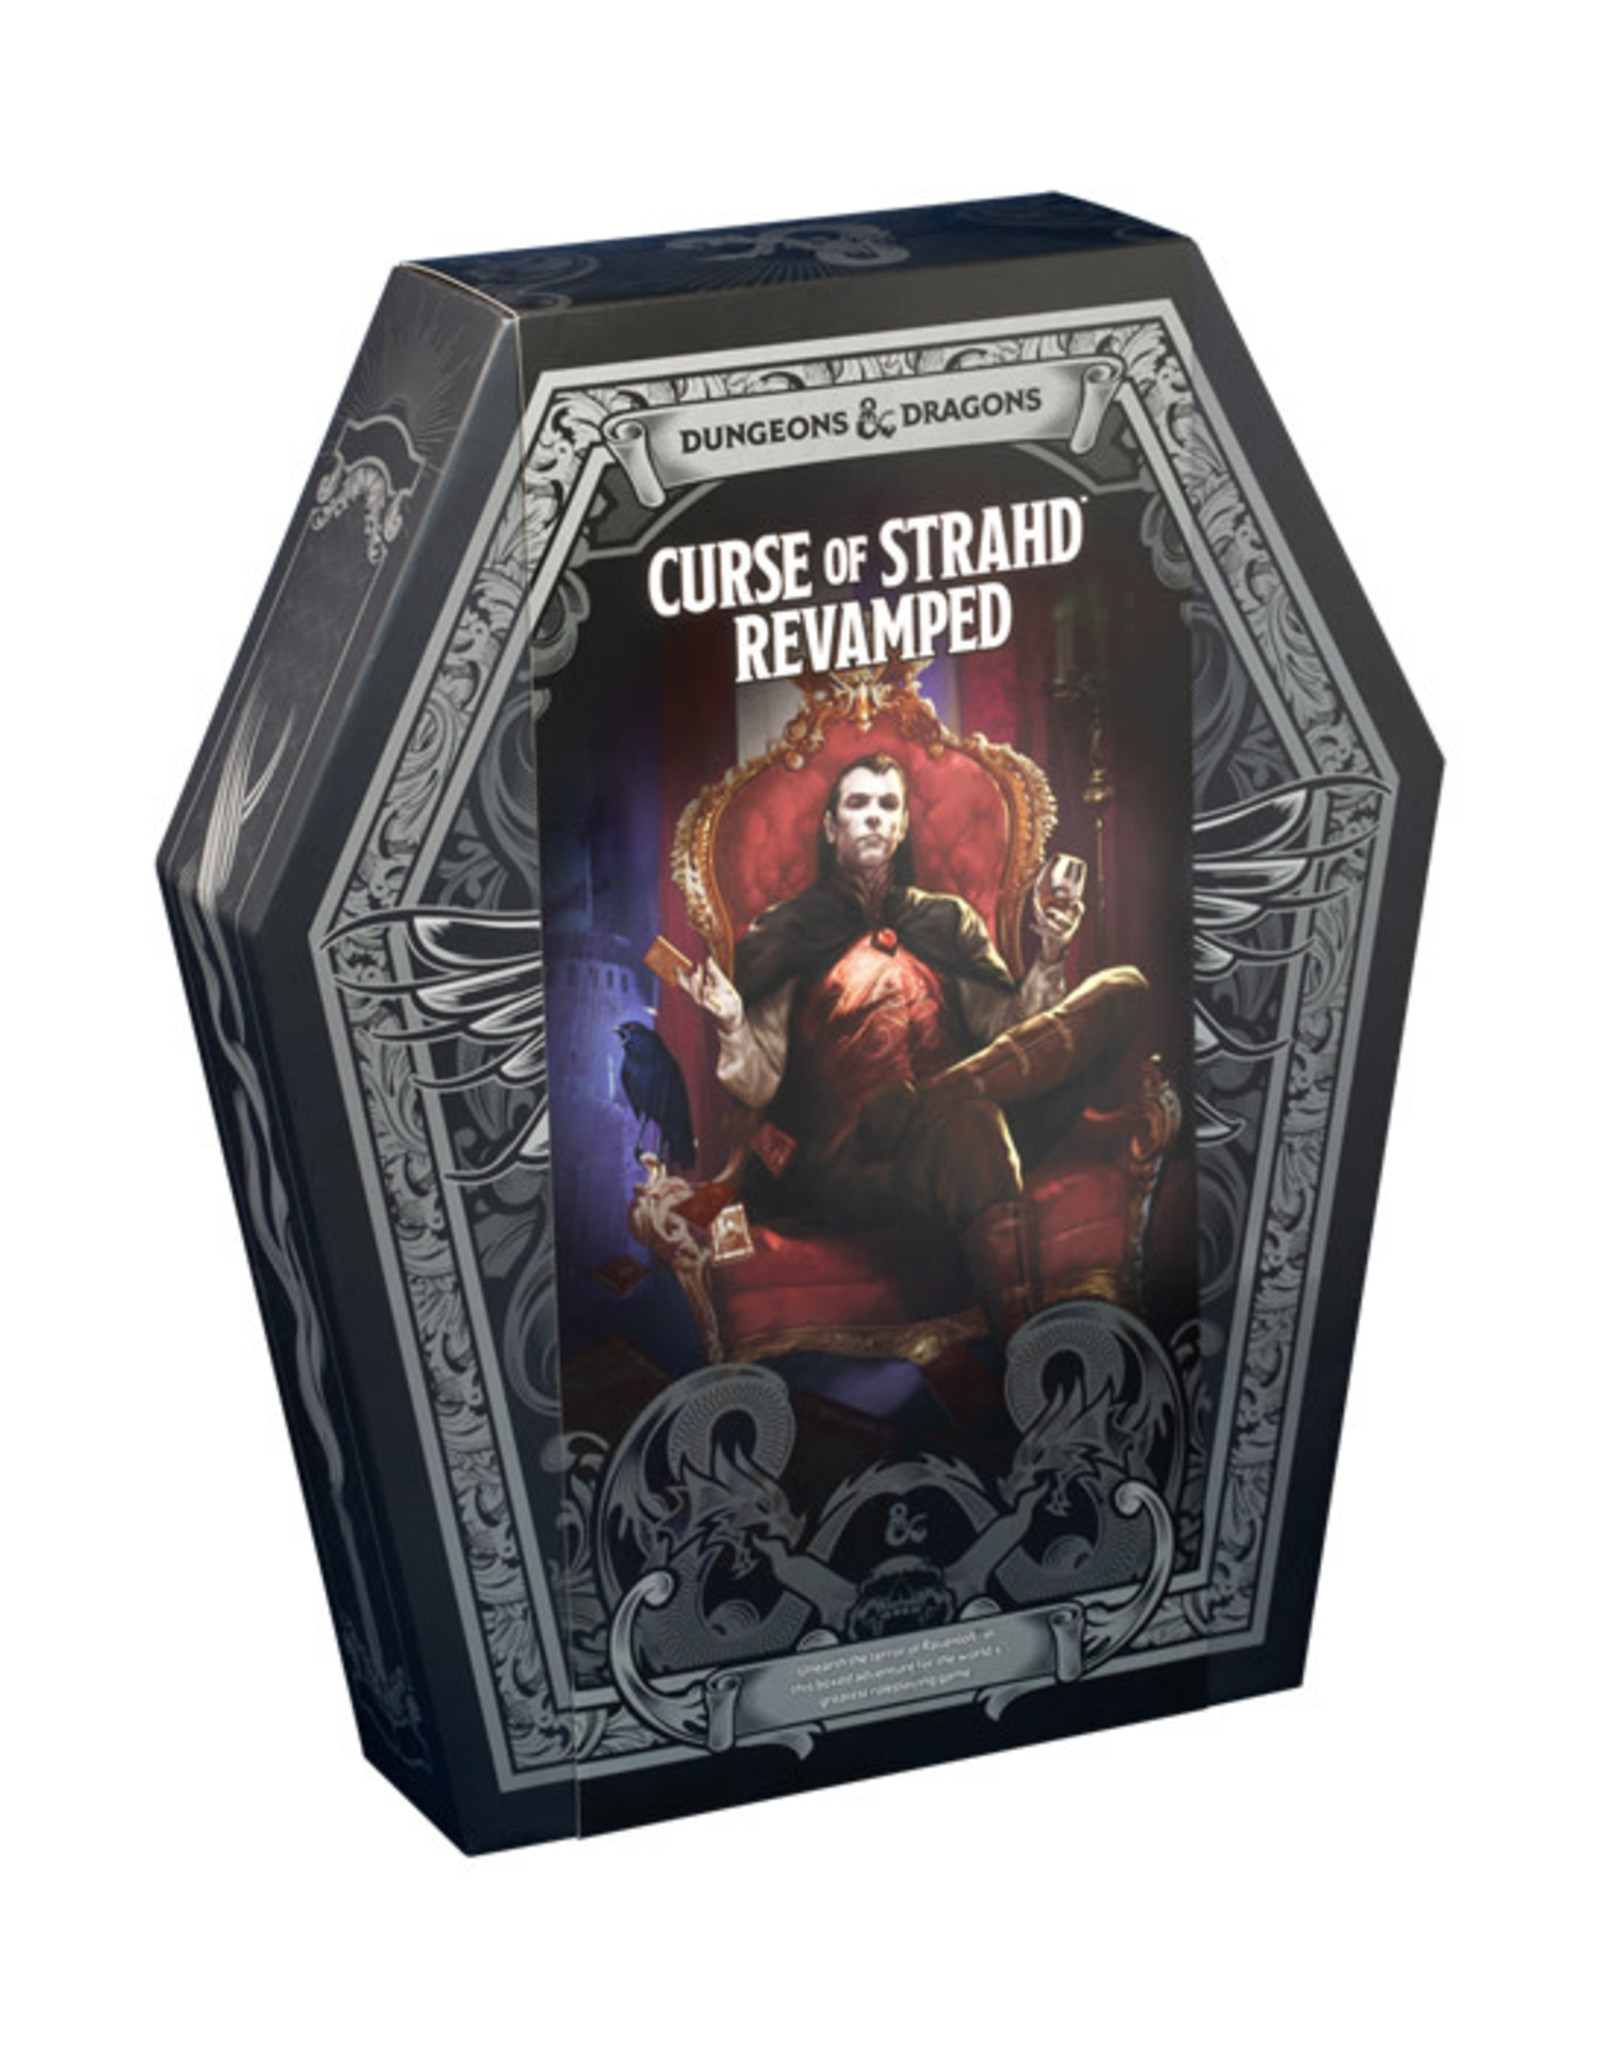 Dungeons & Dragons Dungeons & Dragons: 5th Edition - Curse of Strahd - Revamped